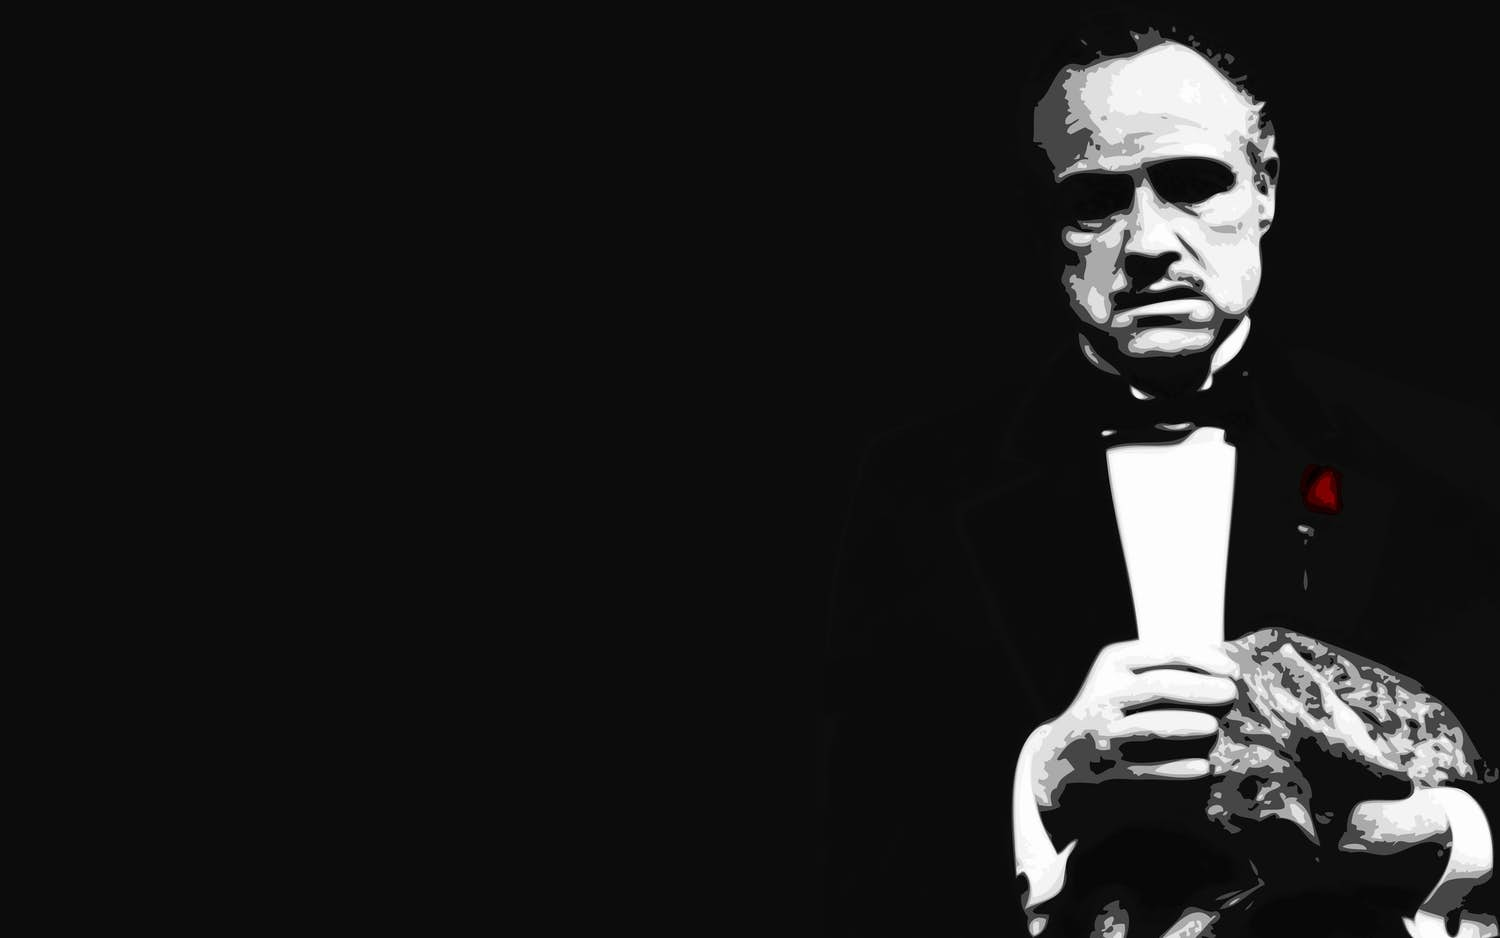 Wall mural The Godfather Photo wallpaper Black   Happywall 1500x938